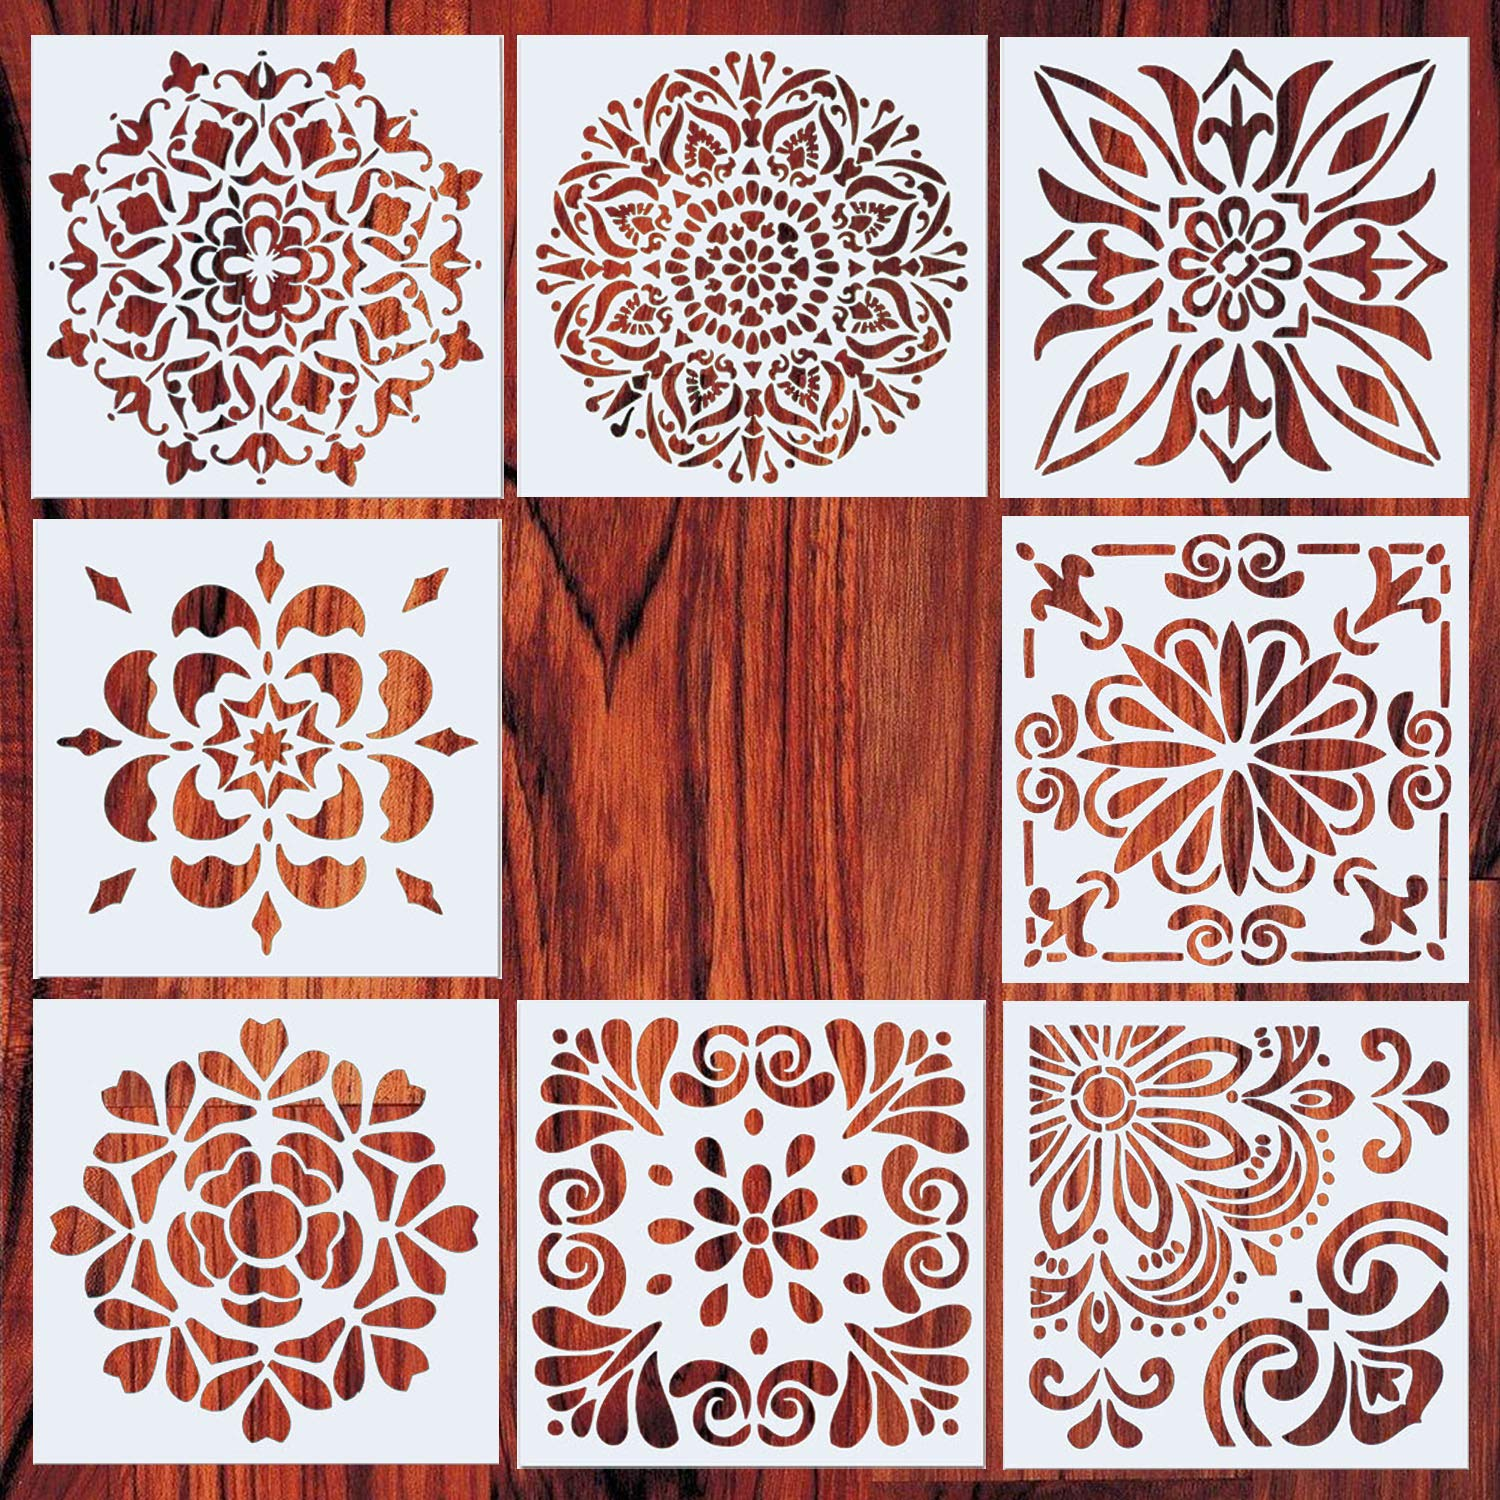 AxPower Mandala Painting Stencils Reusable Stencil Laser Cut Painting Template Floor Wall Tile Fabric Furniture Stencils, Set of 8 (6x6 inch) by AxPower